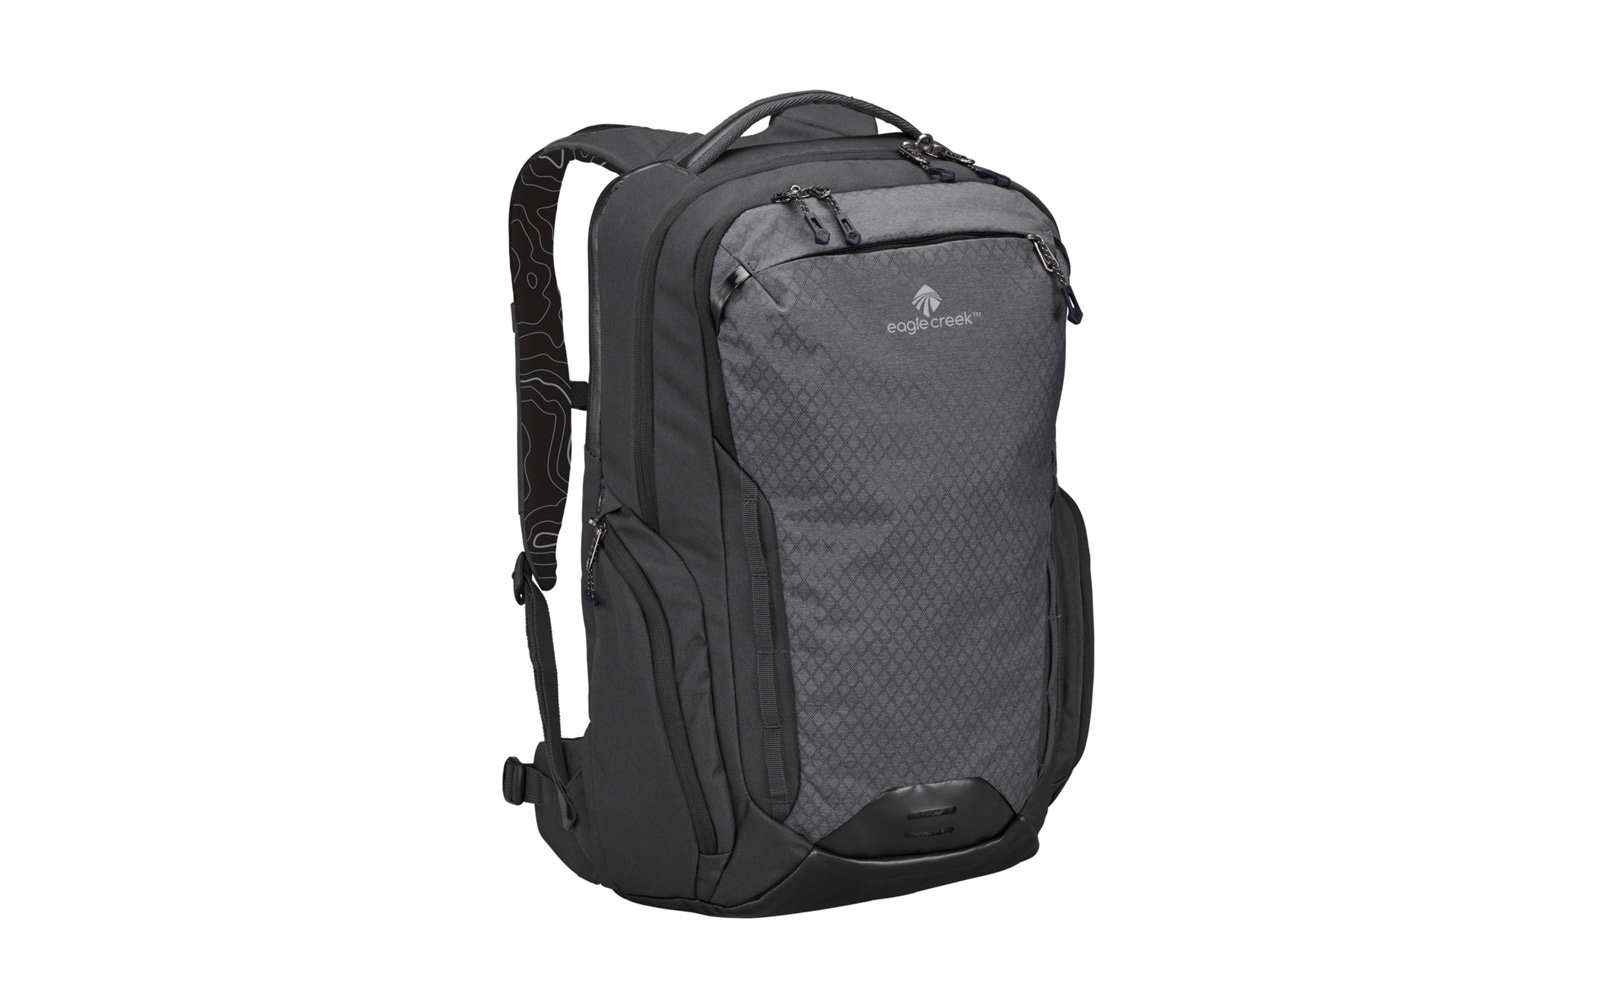 8e543262c067 Best Carry-on Backpack  Eagle Creek Wayfinder 40L Backpack